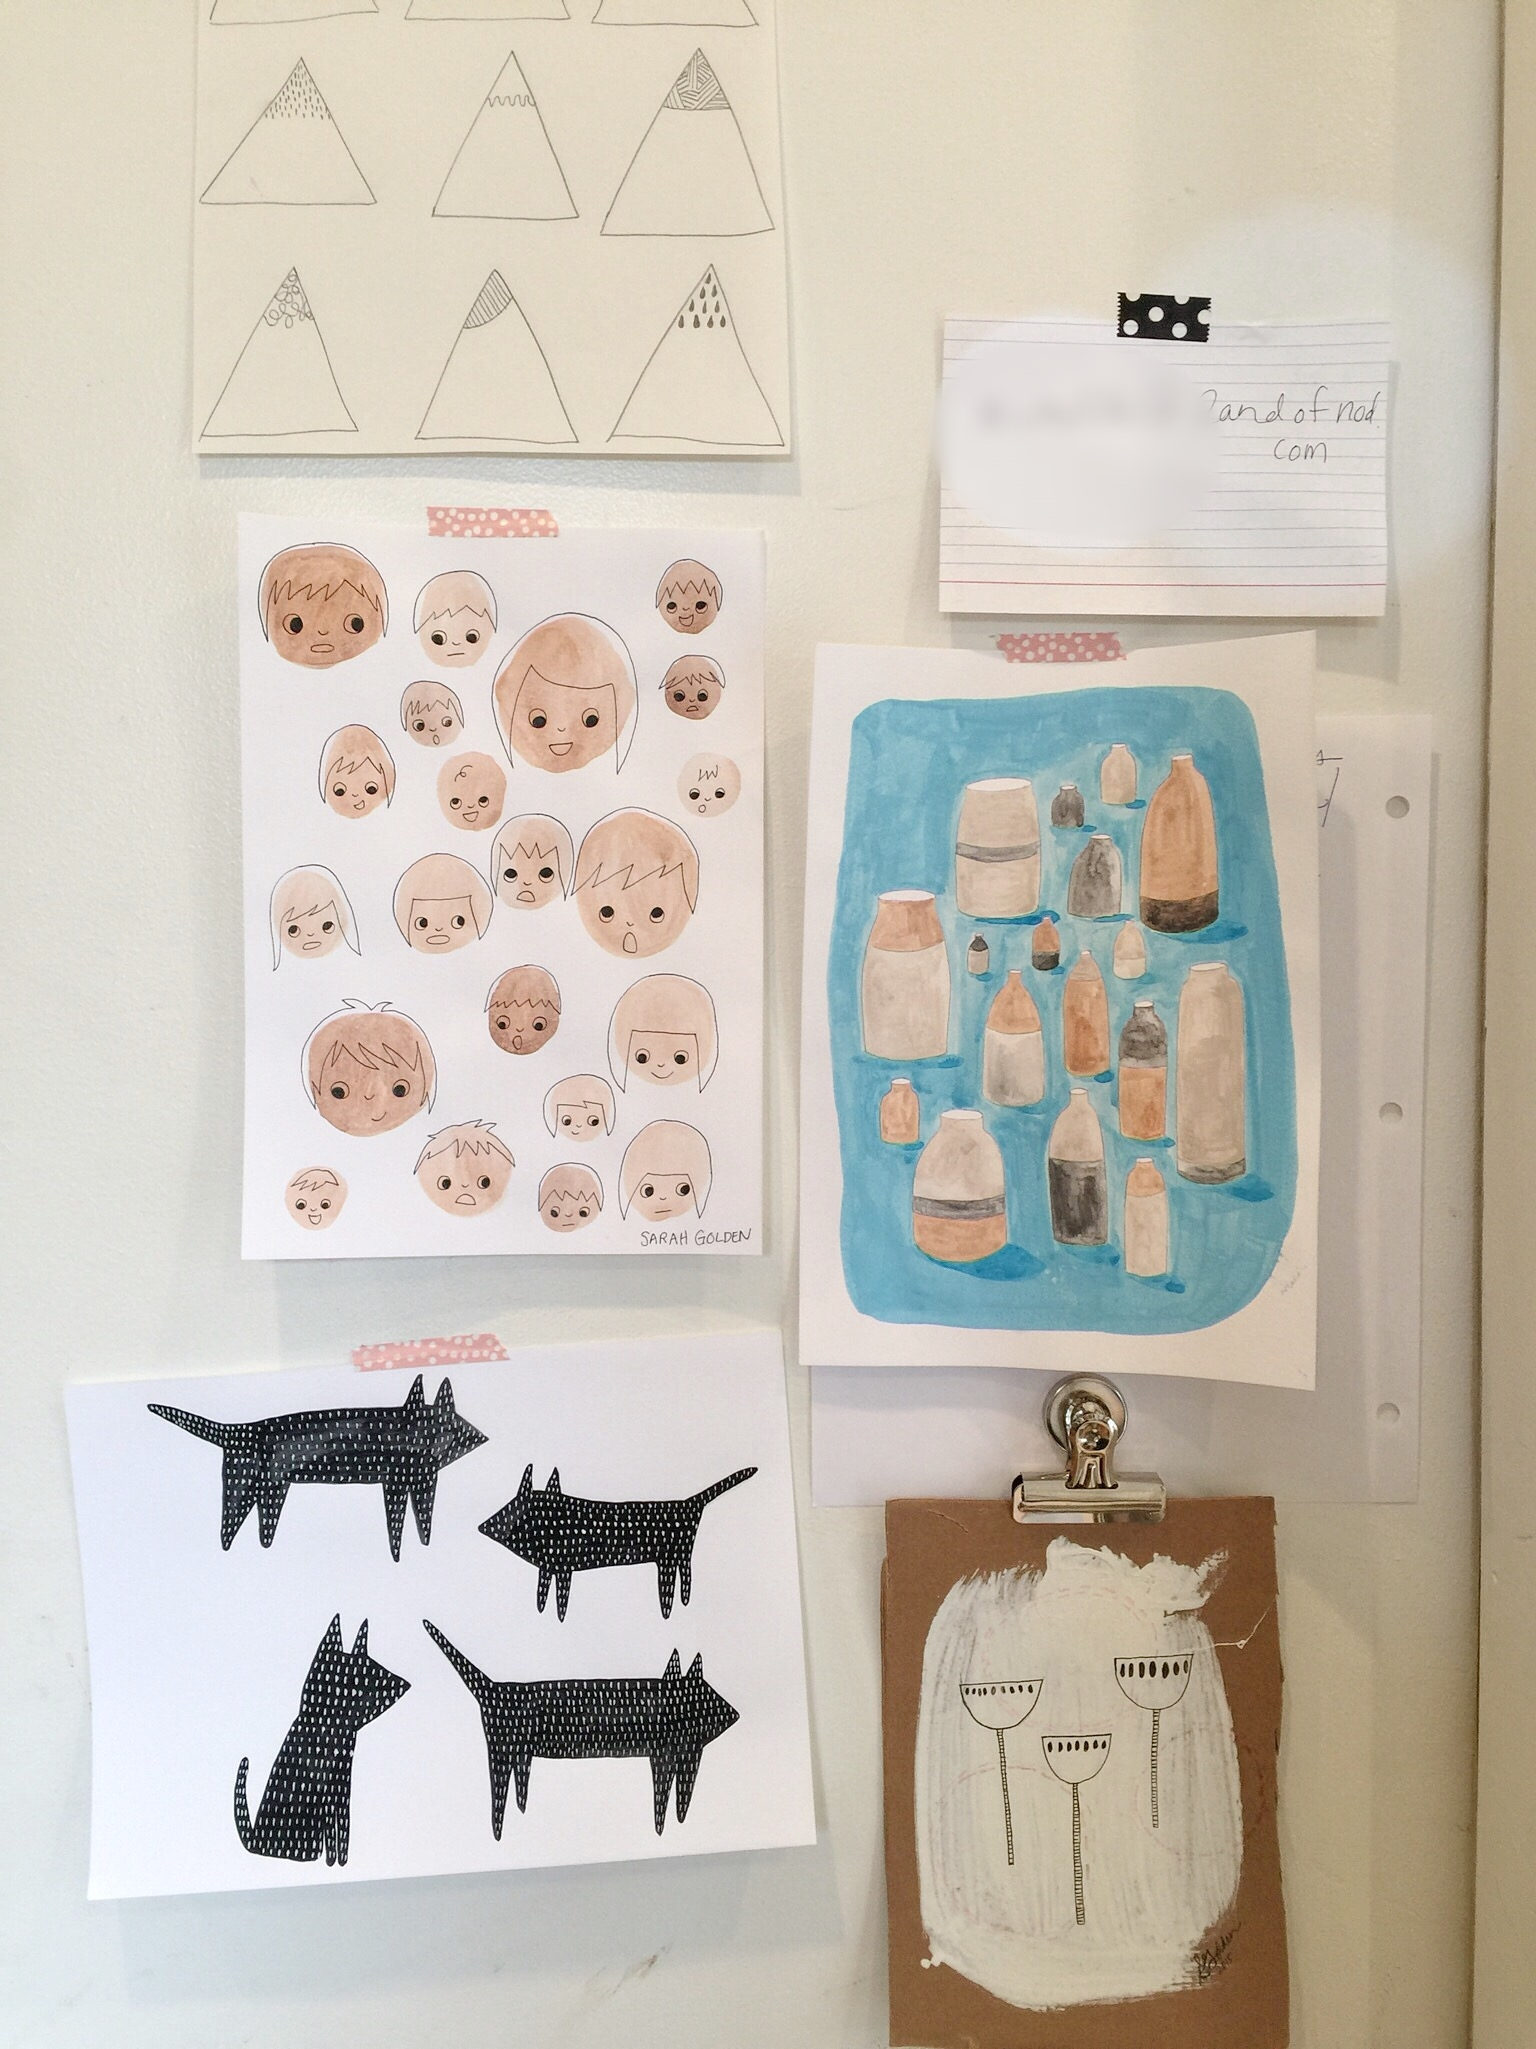 We're crazy about these family doodles!